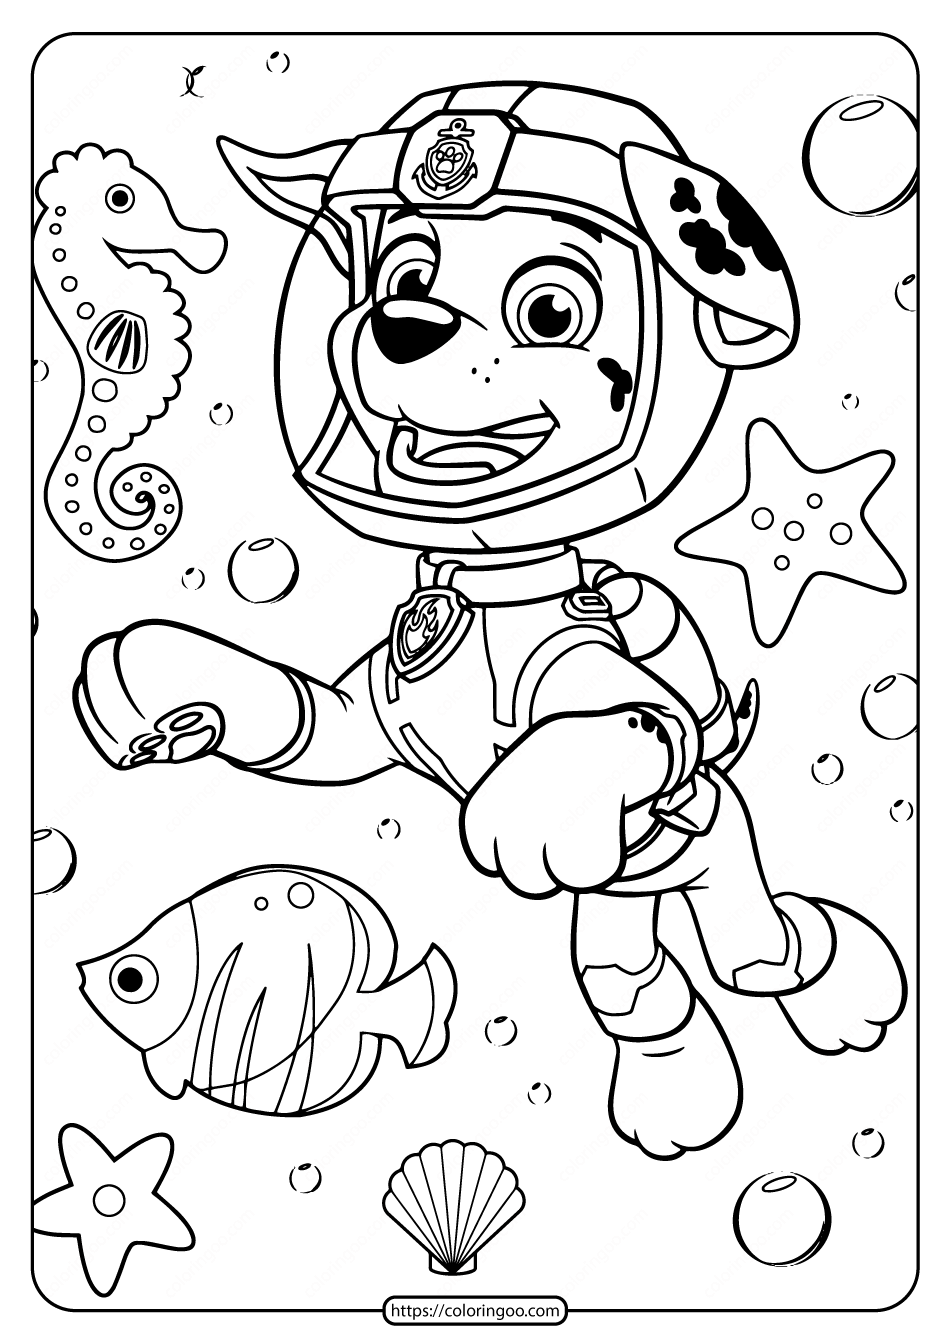 Printable Paw Patrol Pdf Coloring Pages